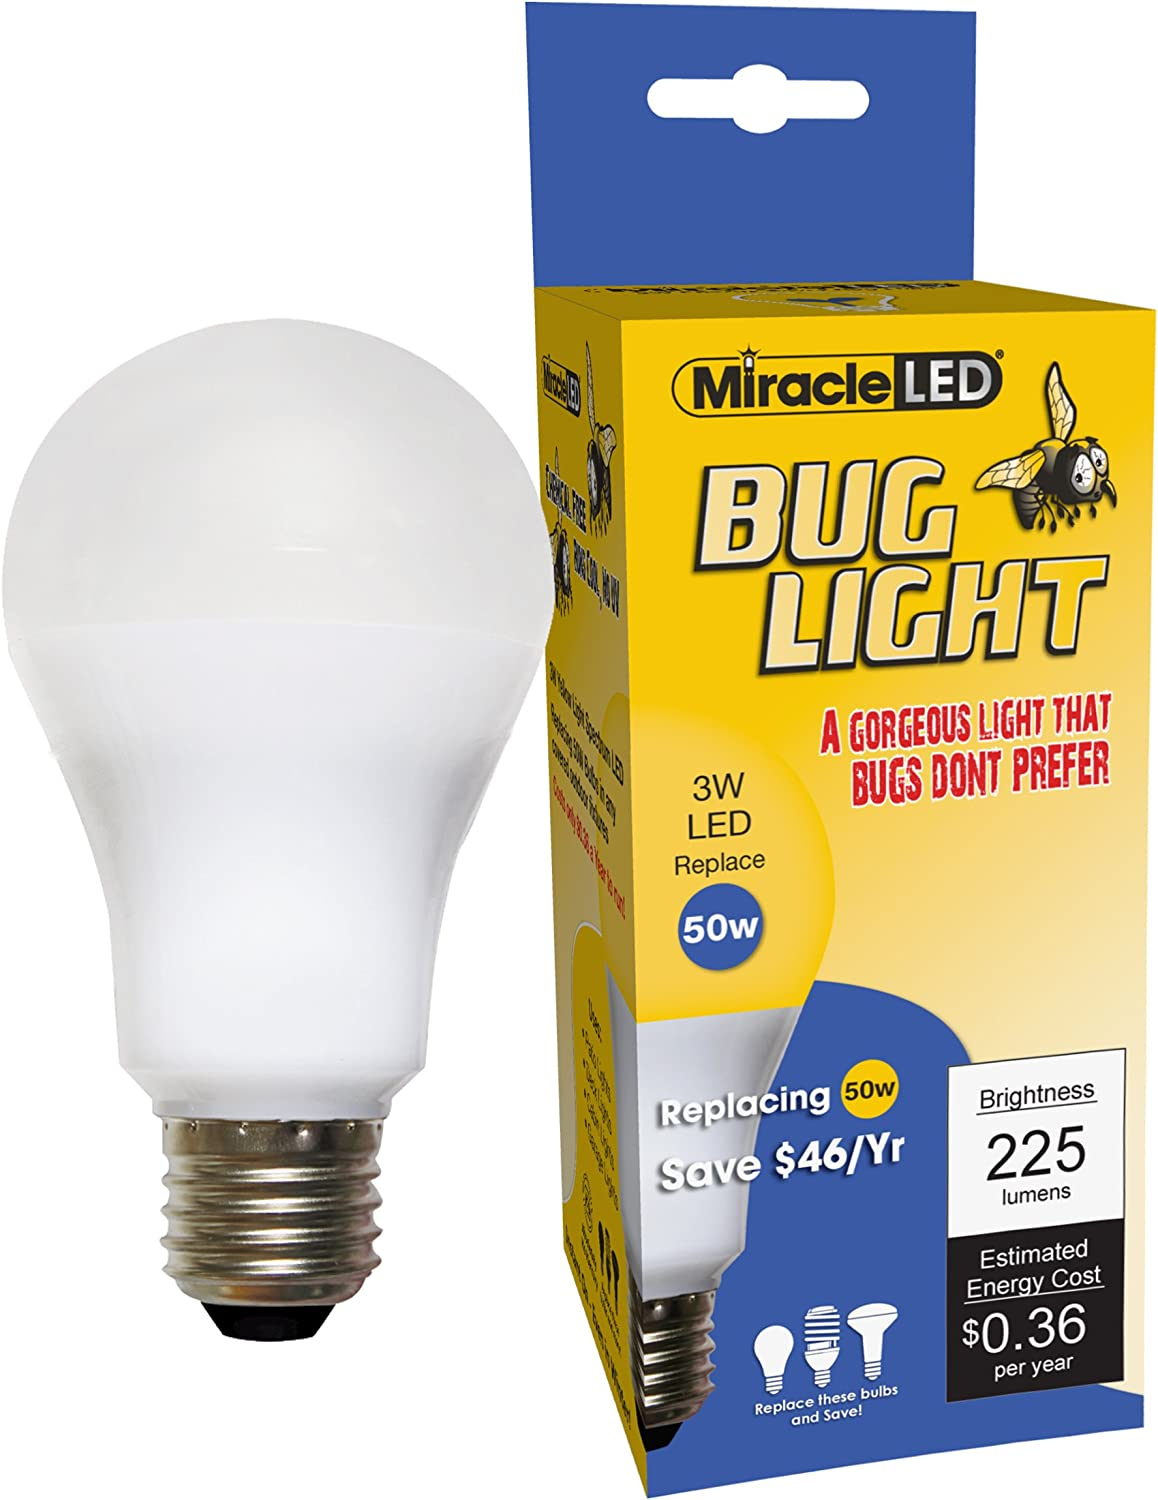 Miracleled 605023 3w Bug Single Pack Replacing Old Hot 50w Incandescent Bulbs Yellow Light Led Household Light Bulbs Amazon Com